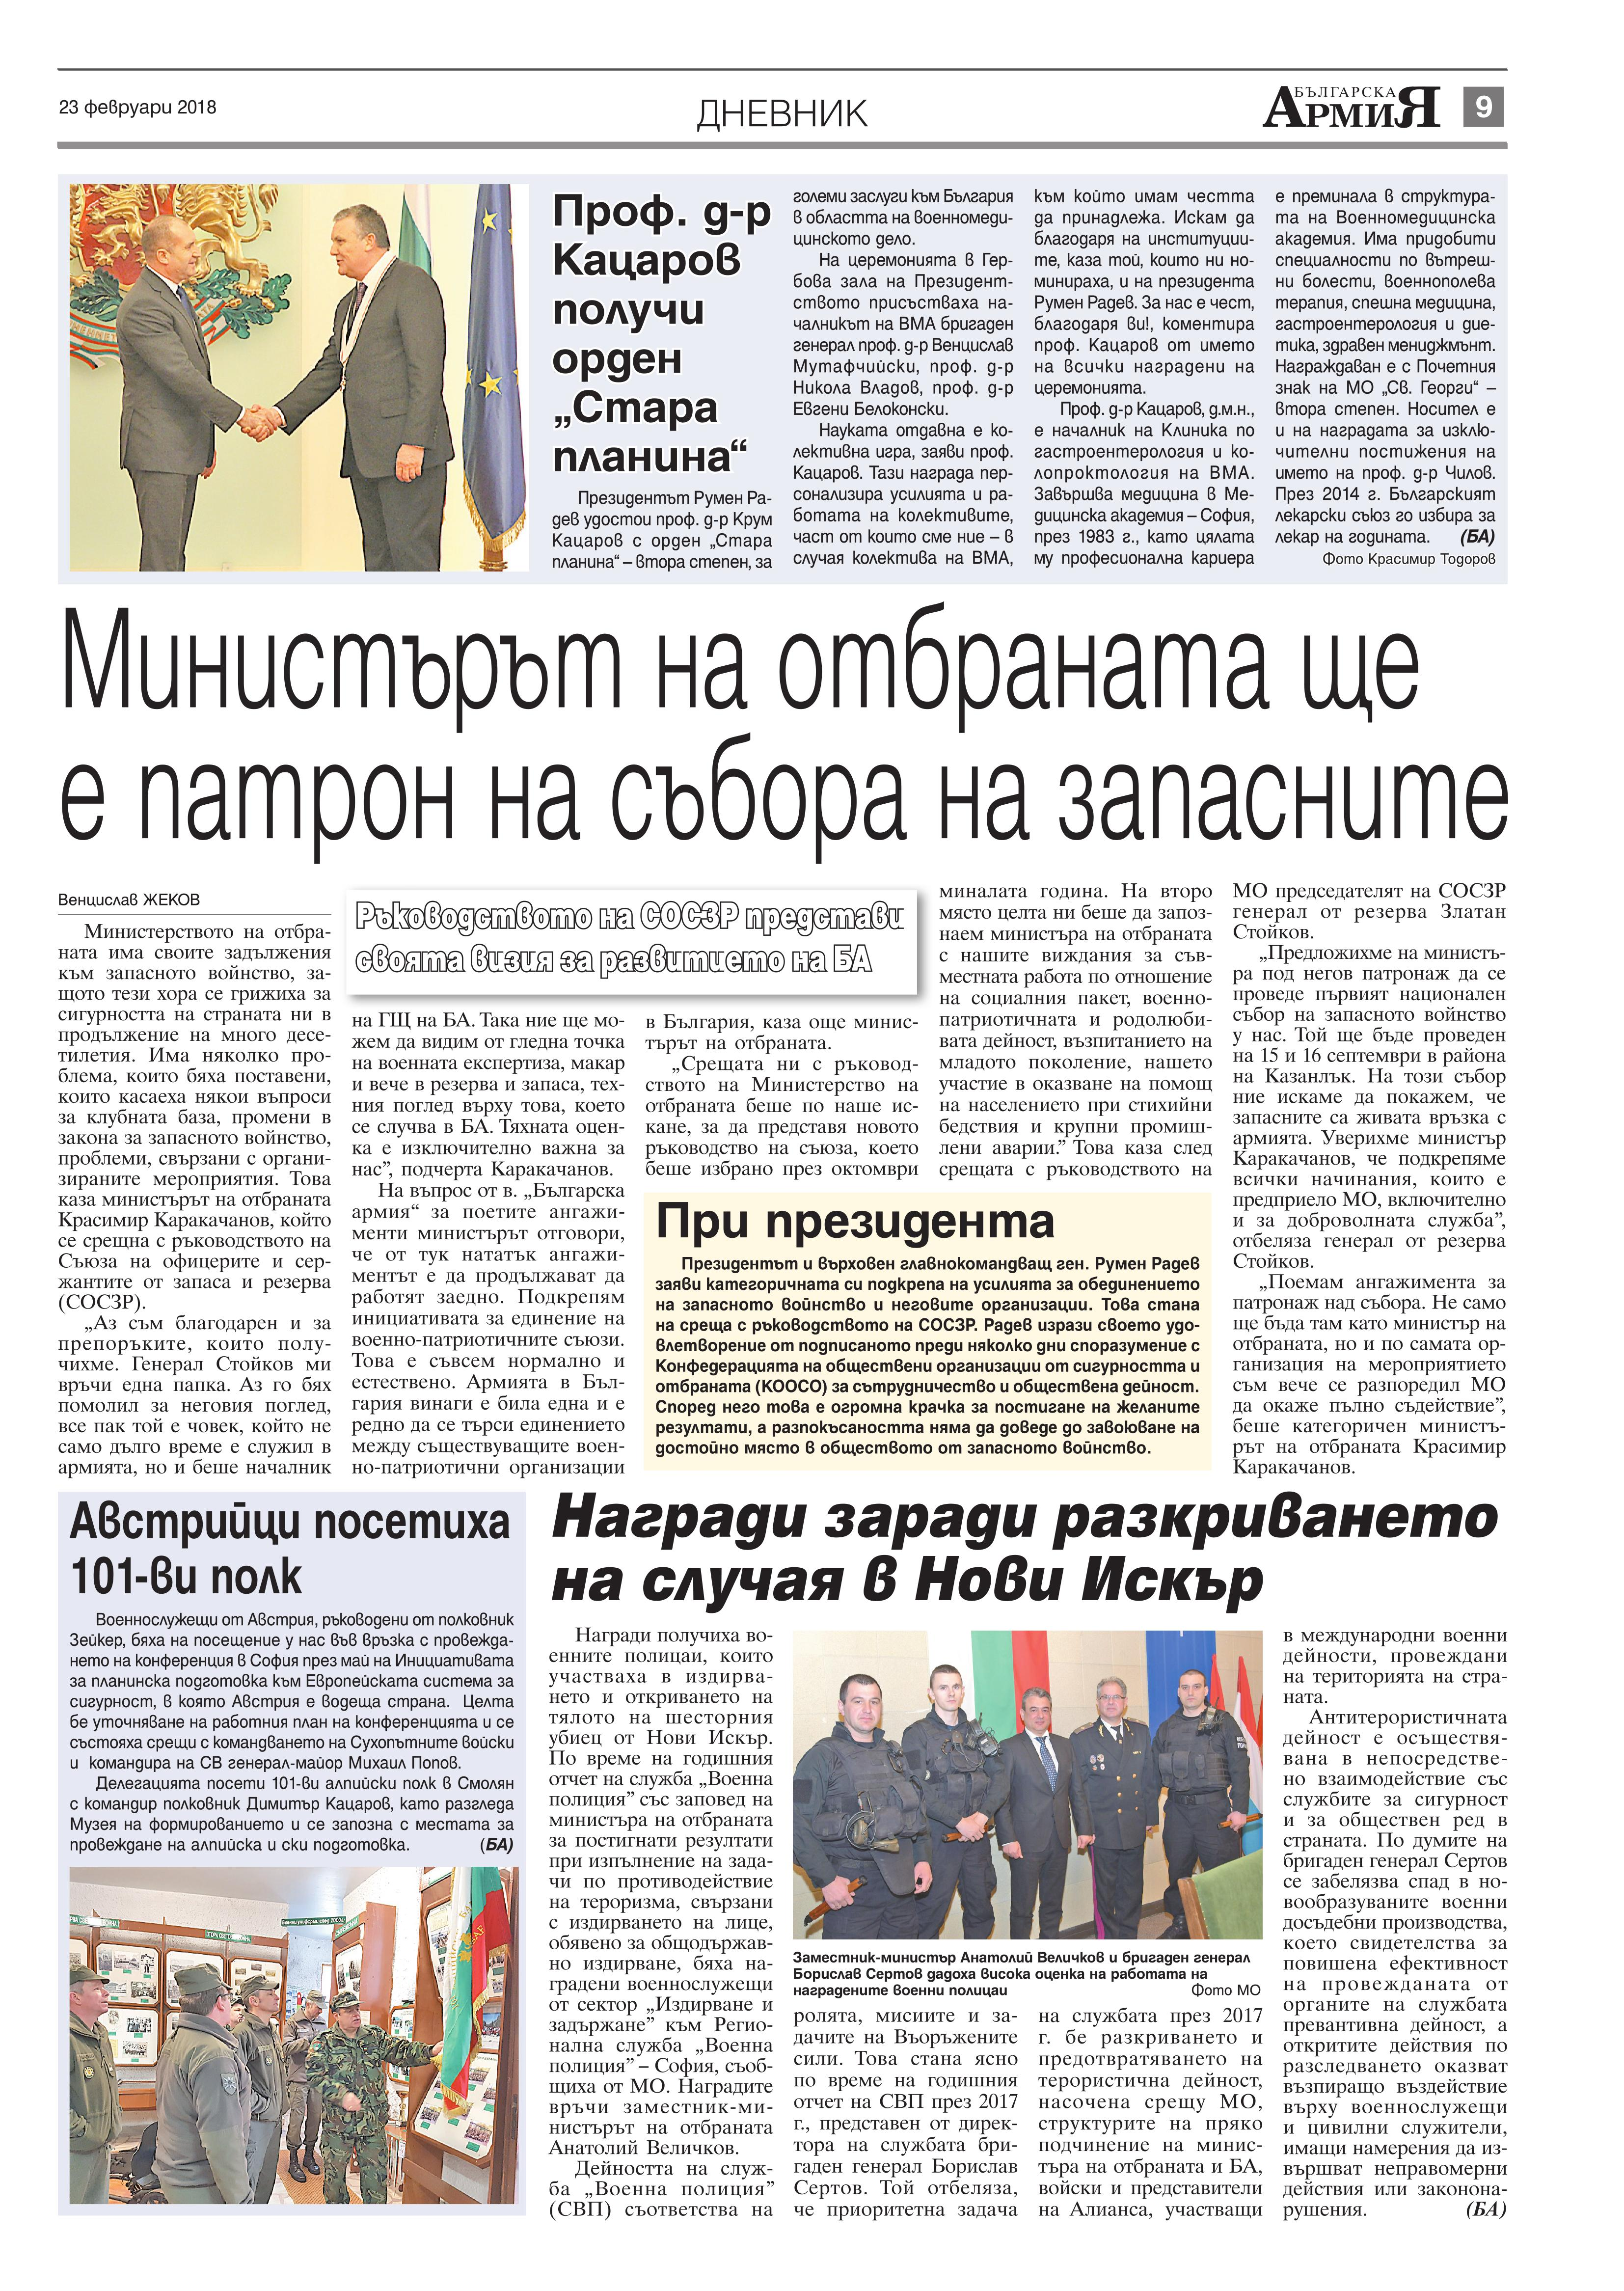 https://armymedia.bg/wp-content/uploads/2015/06/09.page1_-38.jpg